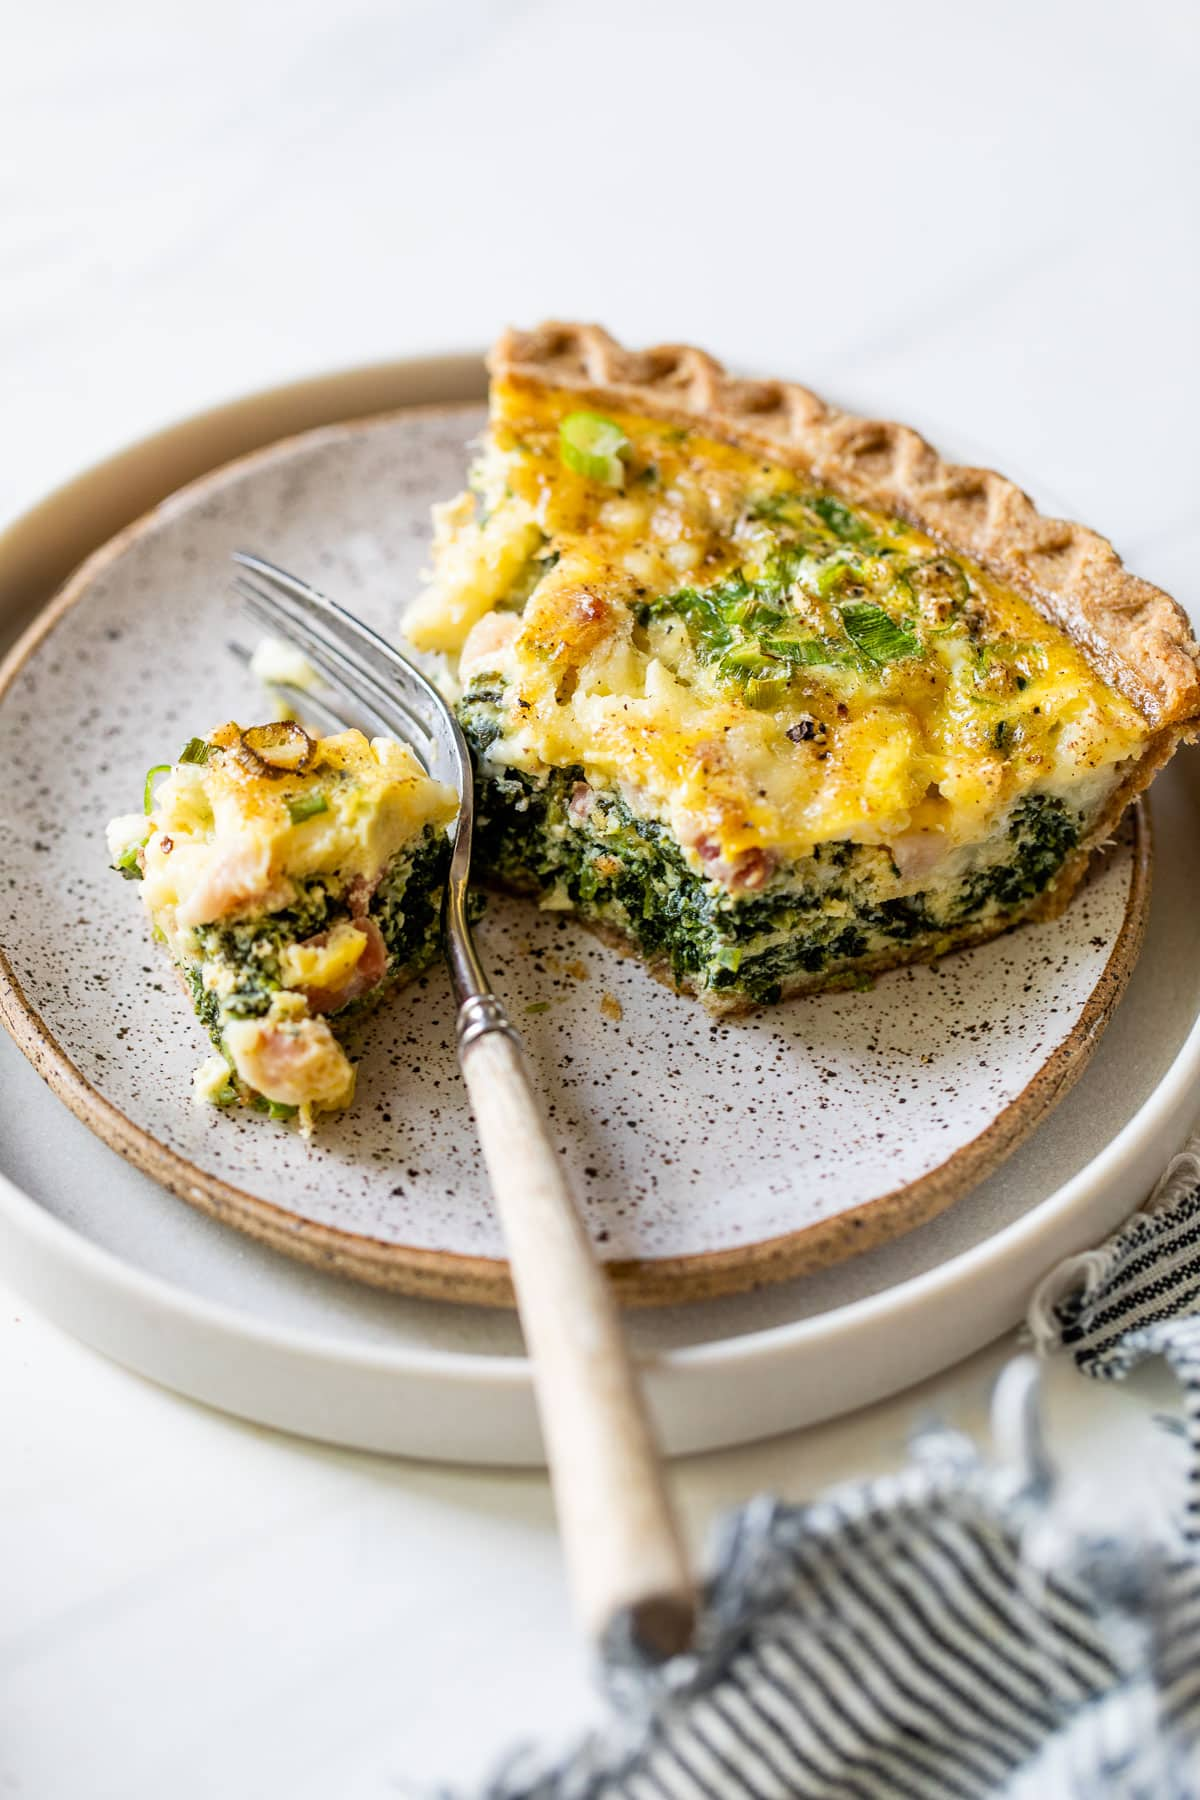 Sunburst Spring Vegetable Quiche with Puff Pastry Crust. A beautiful quiche with asparagus, carrots and leeks.